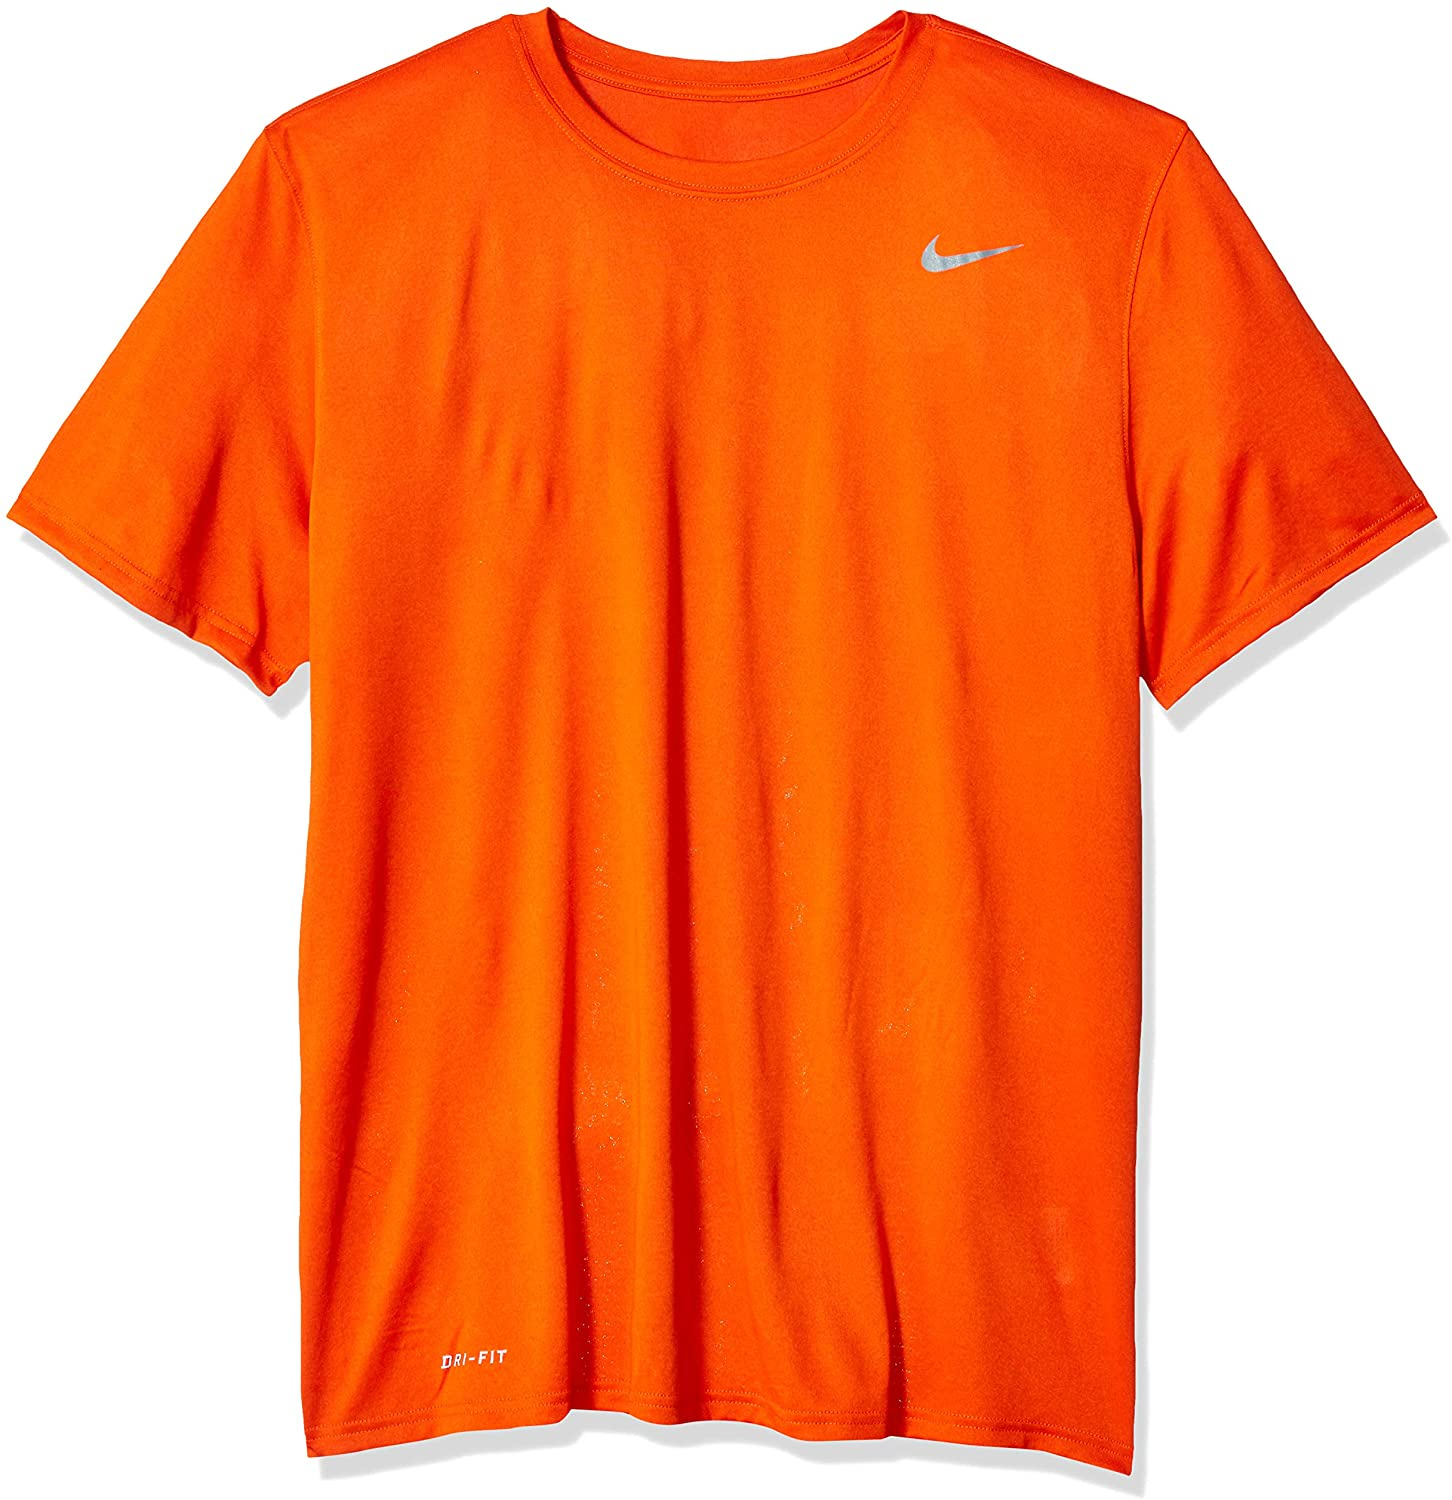 Classier: Buy Nike NIKE Mens Legend Short Sleeve Tee